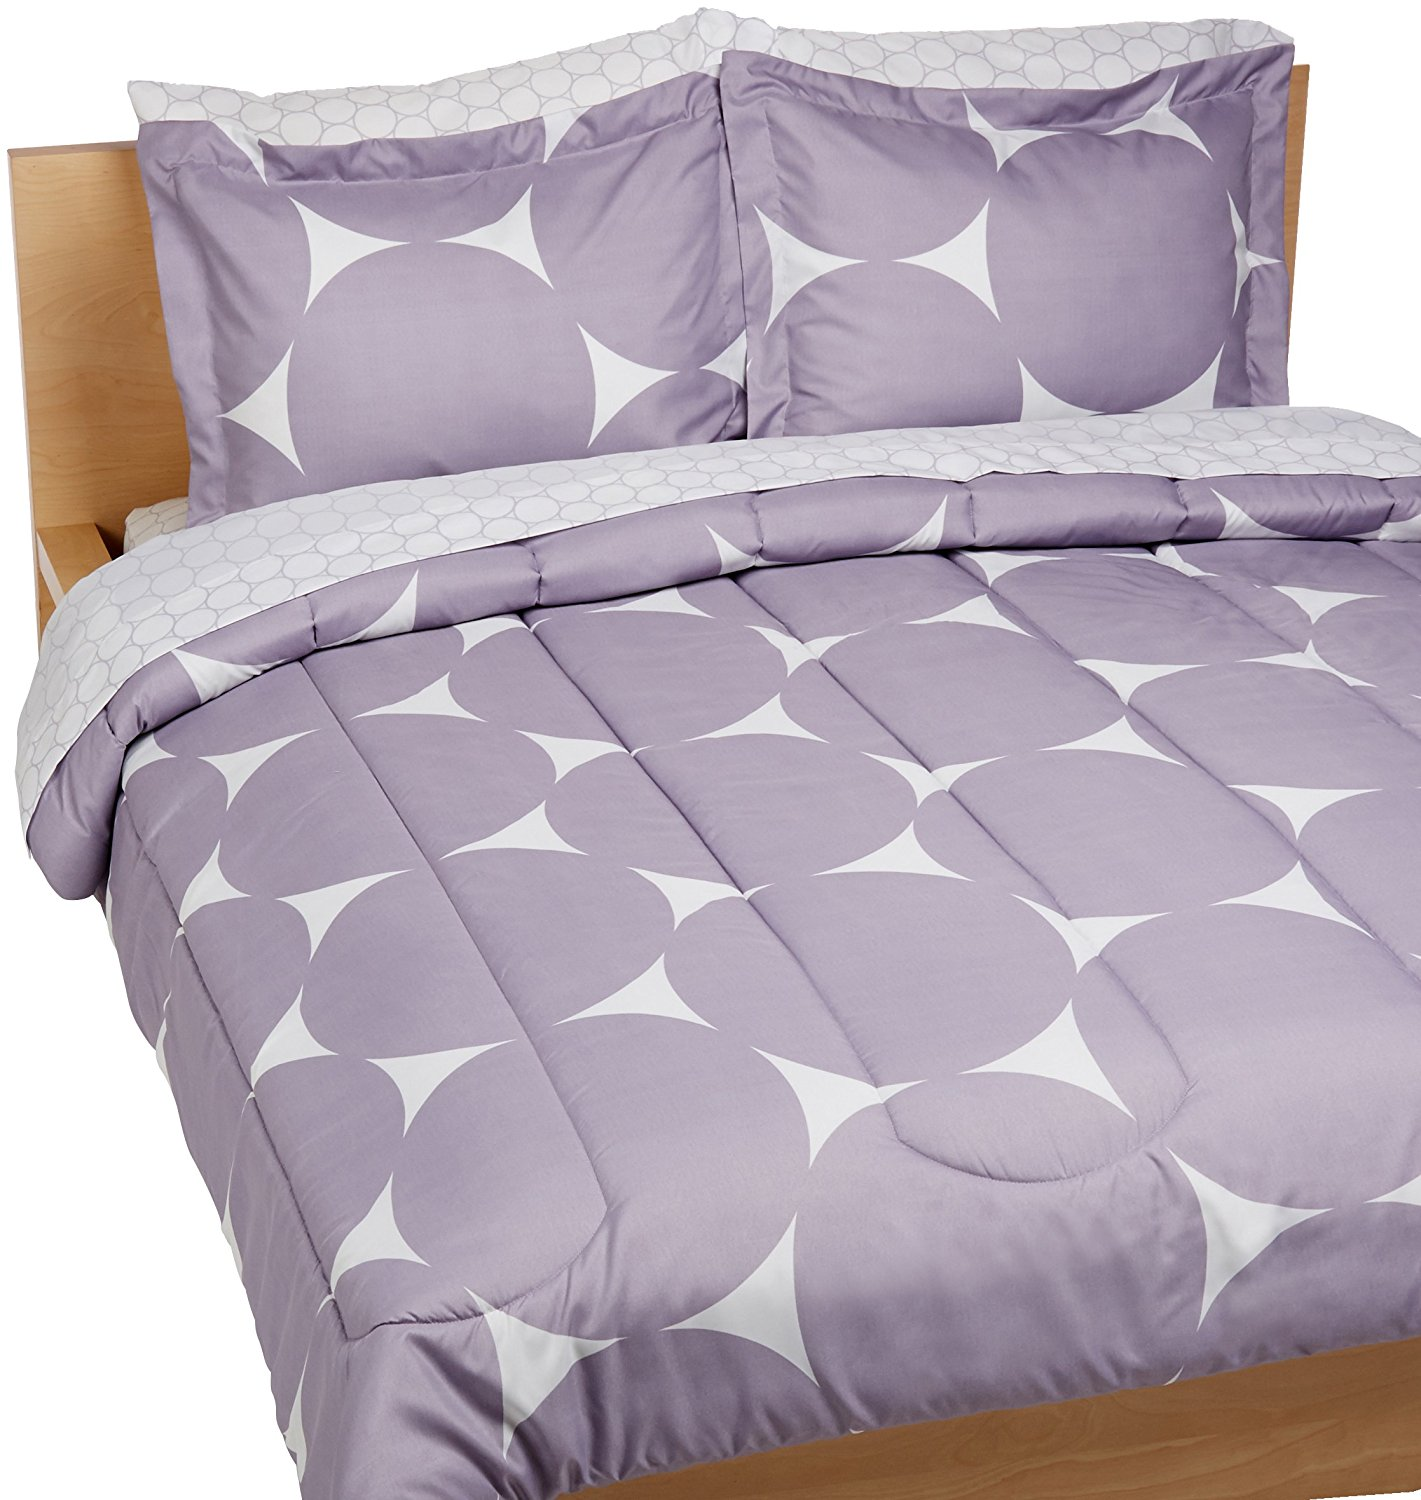 AmazonBasics 7 Piece Bed In A Bag Full Queen